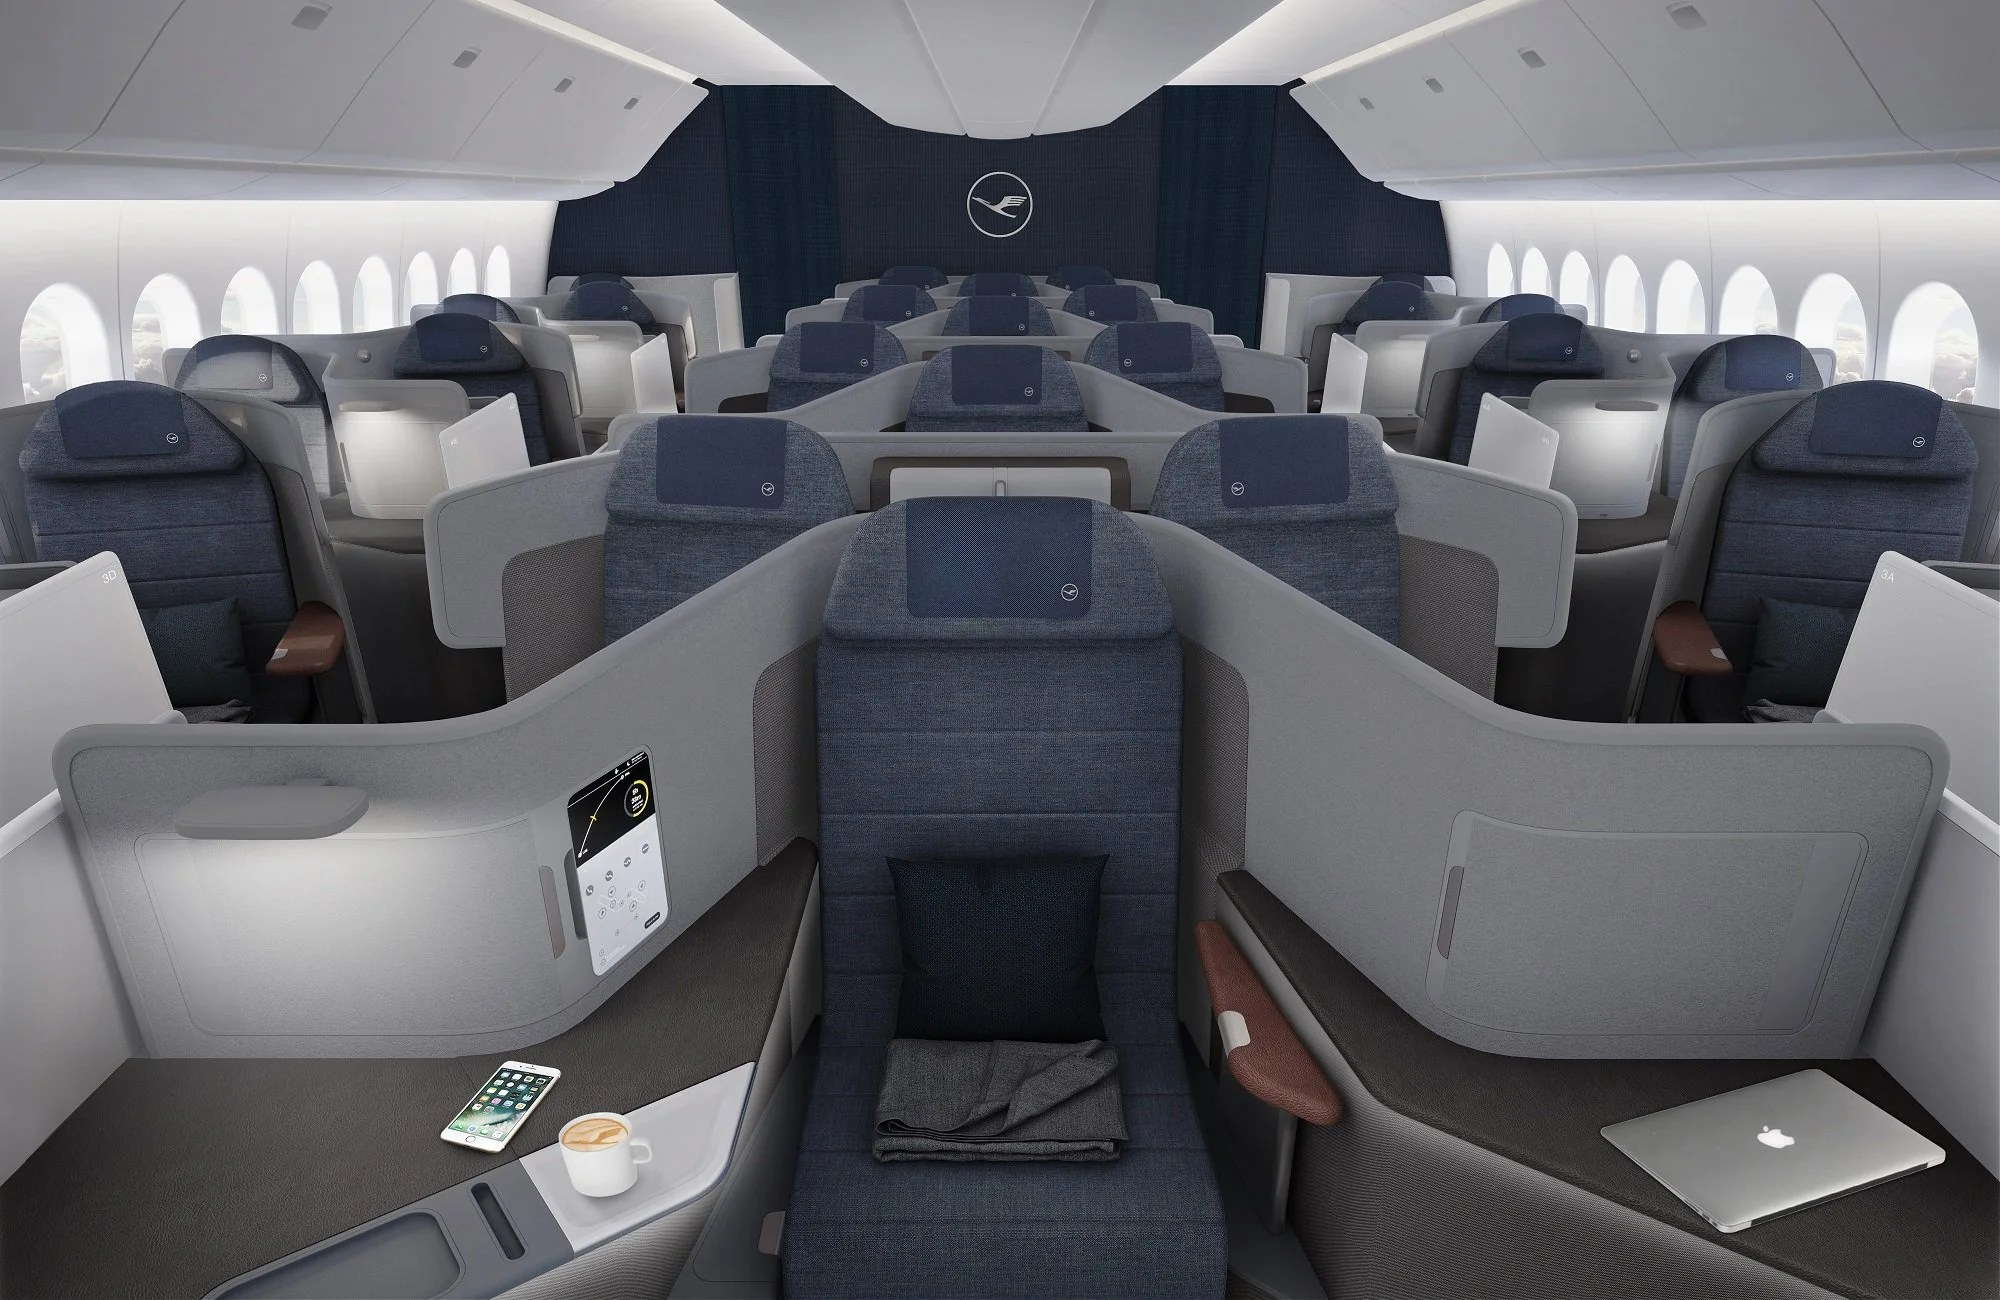 One journey, countless possibilities: the upgrade to Business Class on flights within Europe